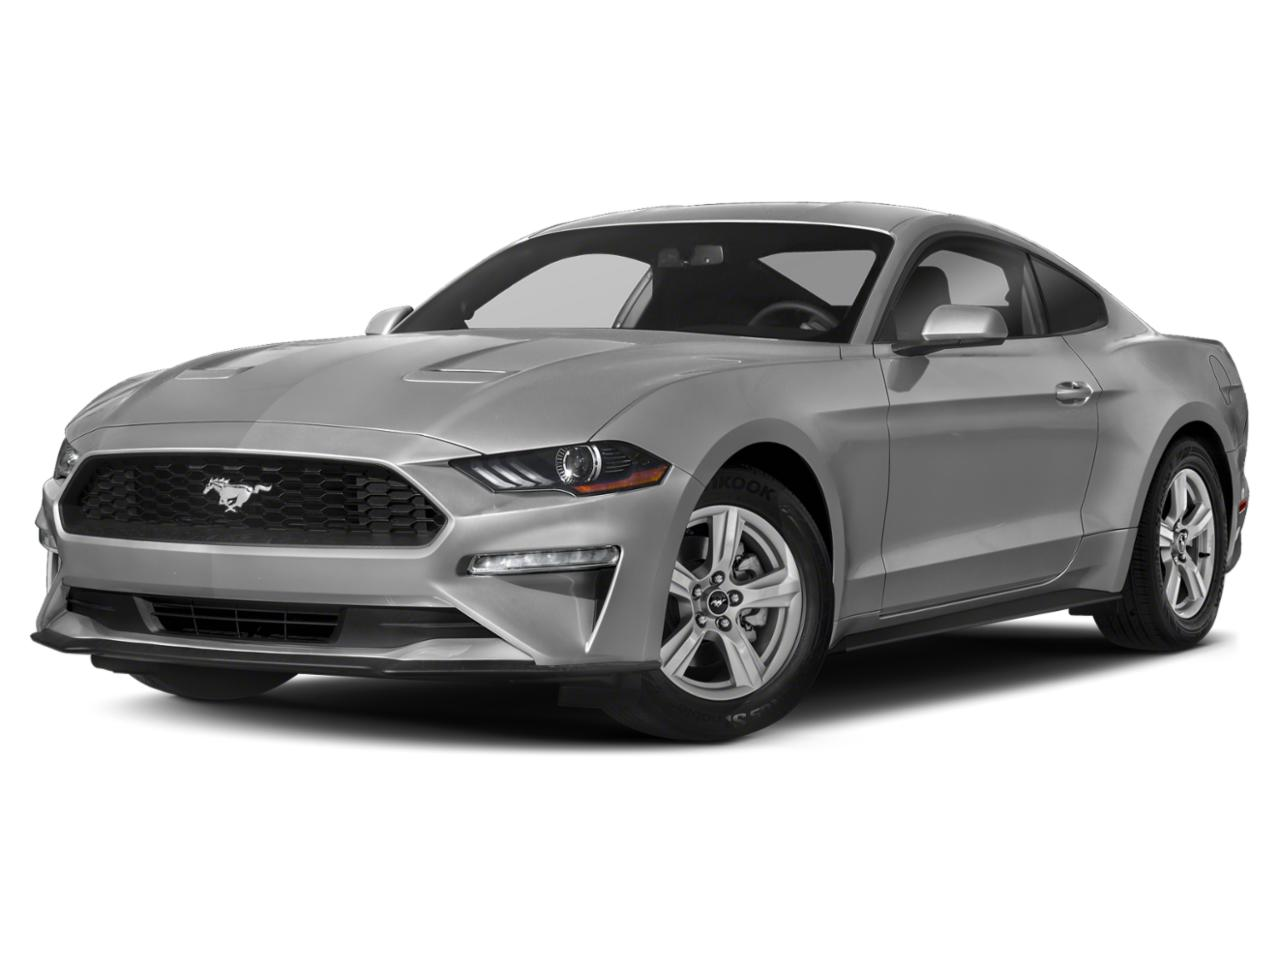 2018 Ford Mustang Vehicle Photo in HOOVER, AL 35216